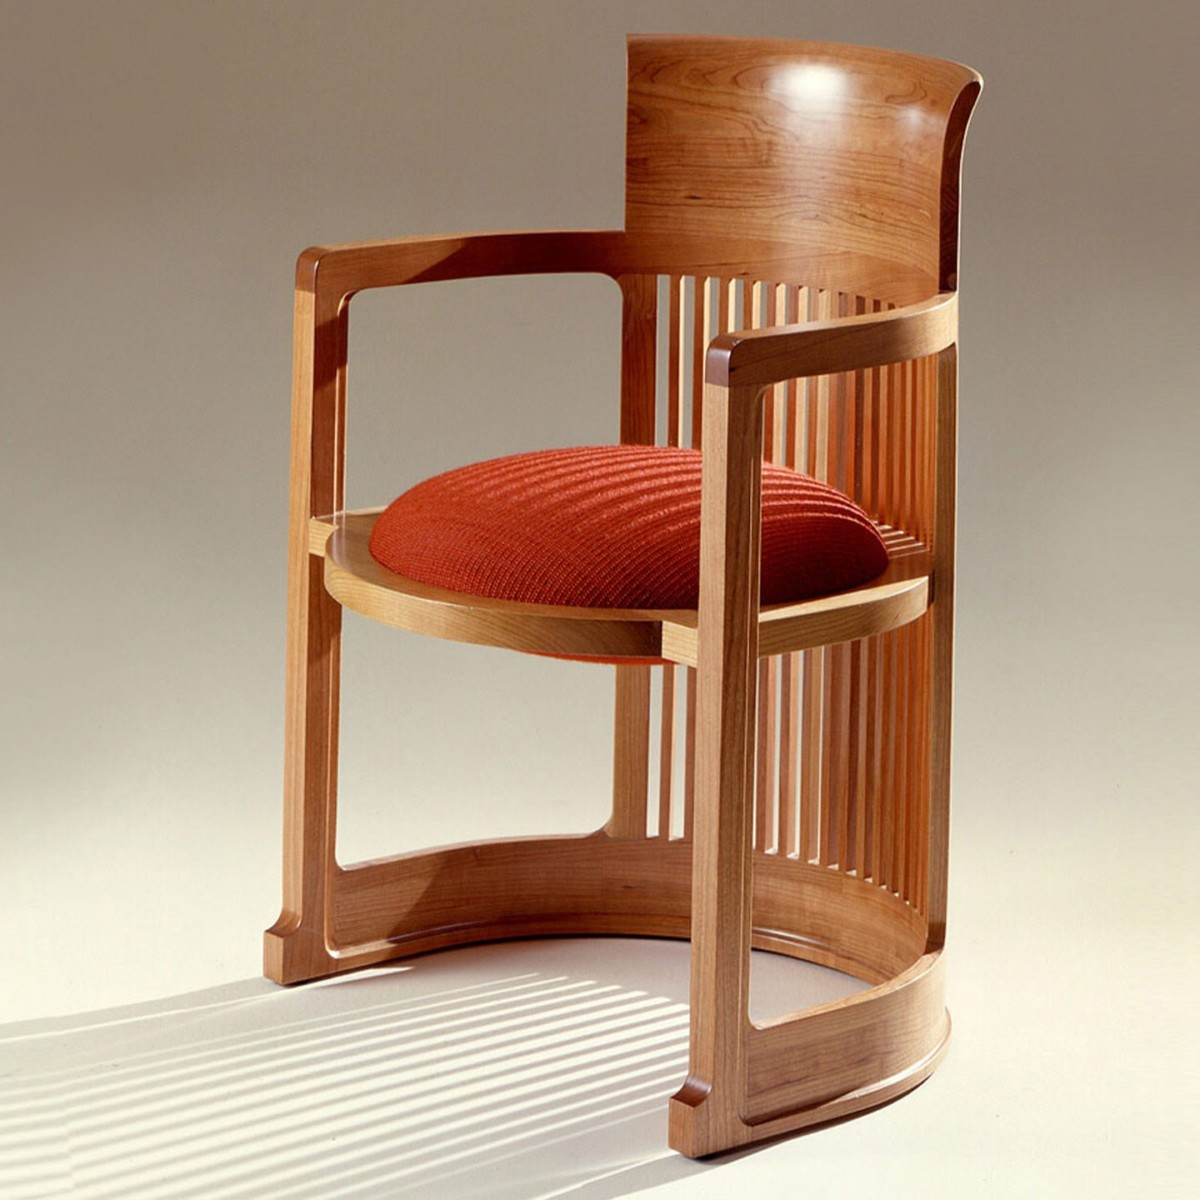 chair design architects dressing table architect frank lloyd wright